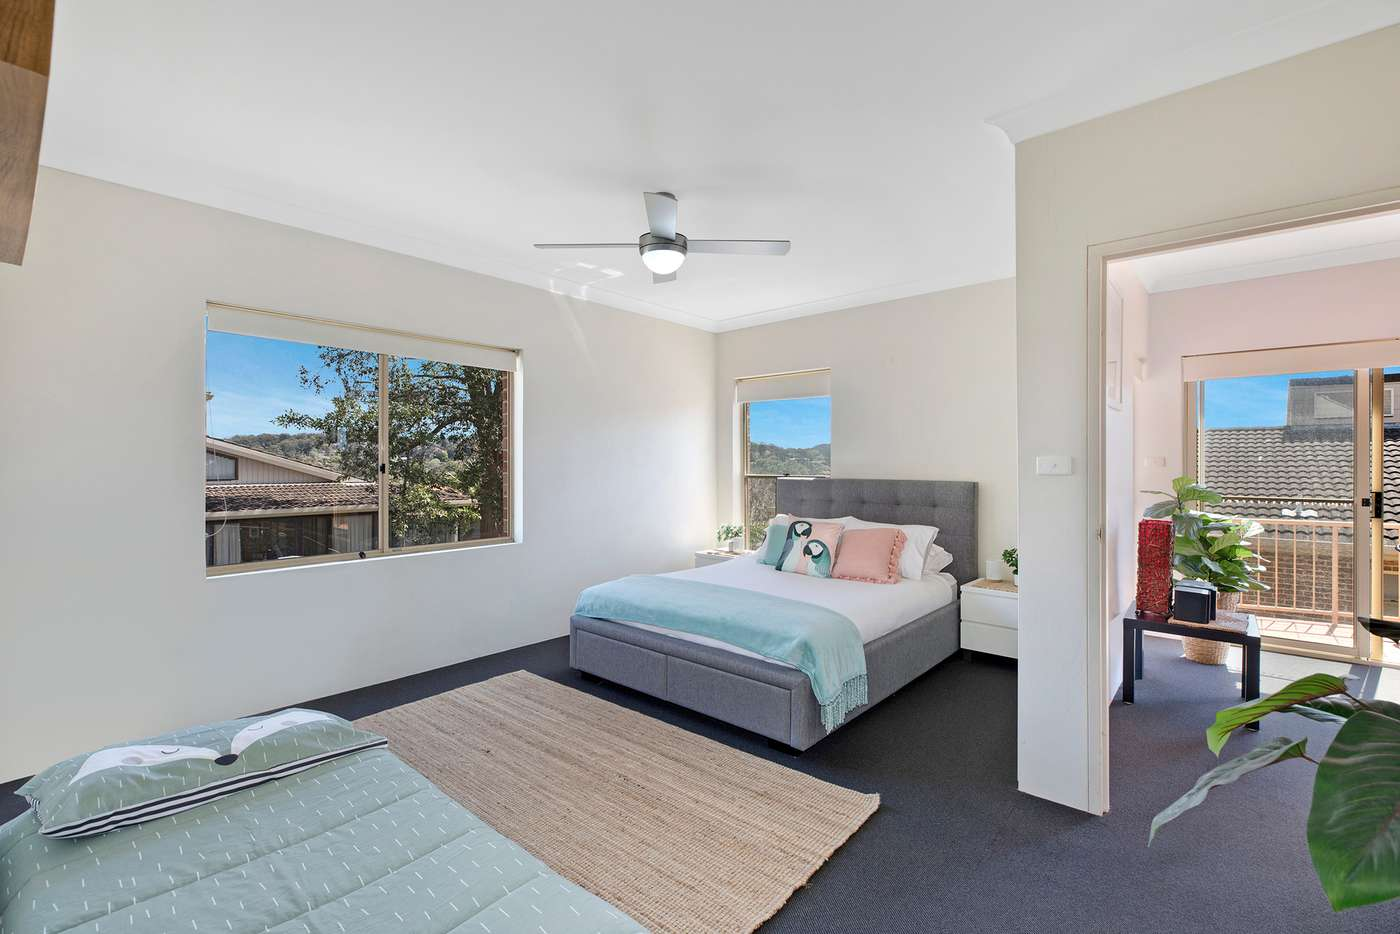 Seventh view of Homely townhouse listing, 6/7 Hillcrest Street, Terrigal NSW 2260